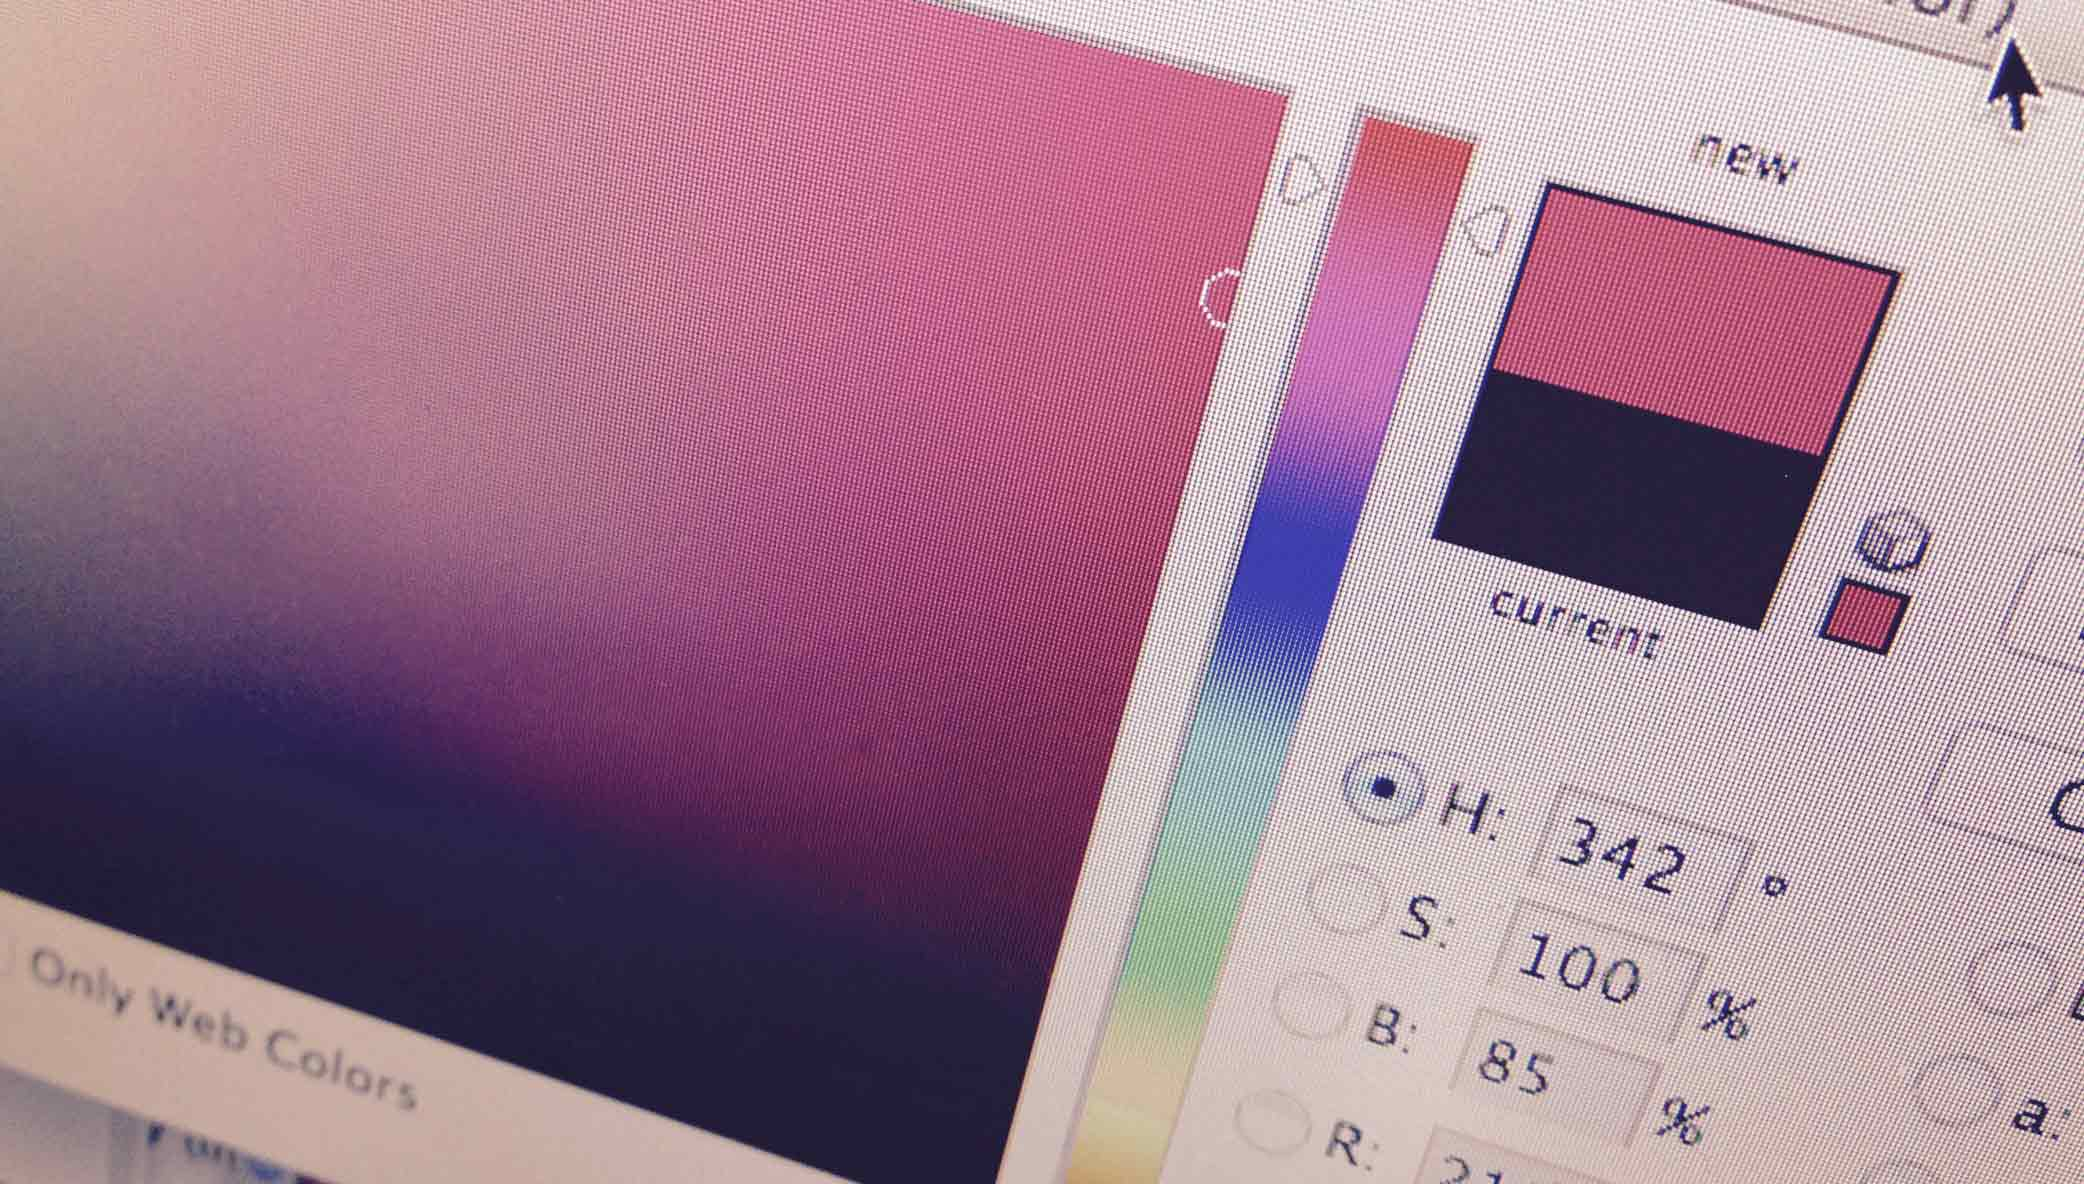 Color Theory for Designers: The Meaning of Color